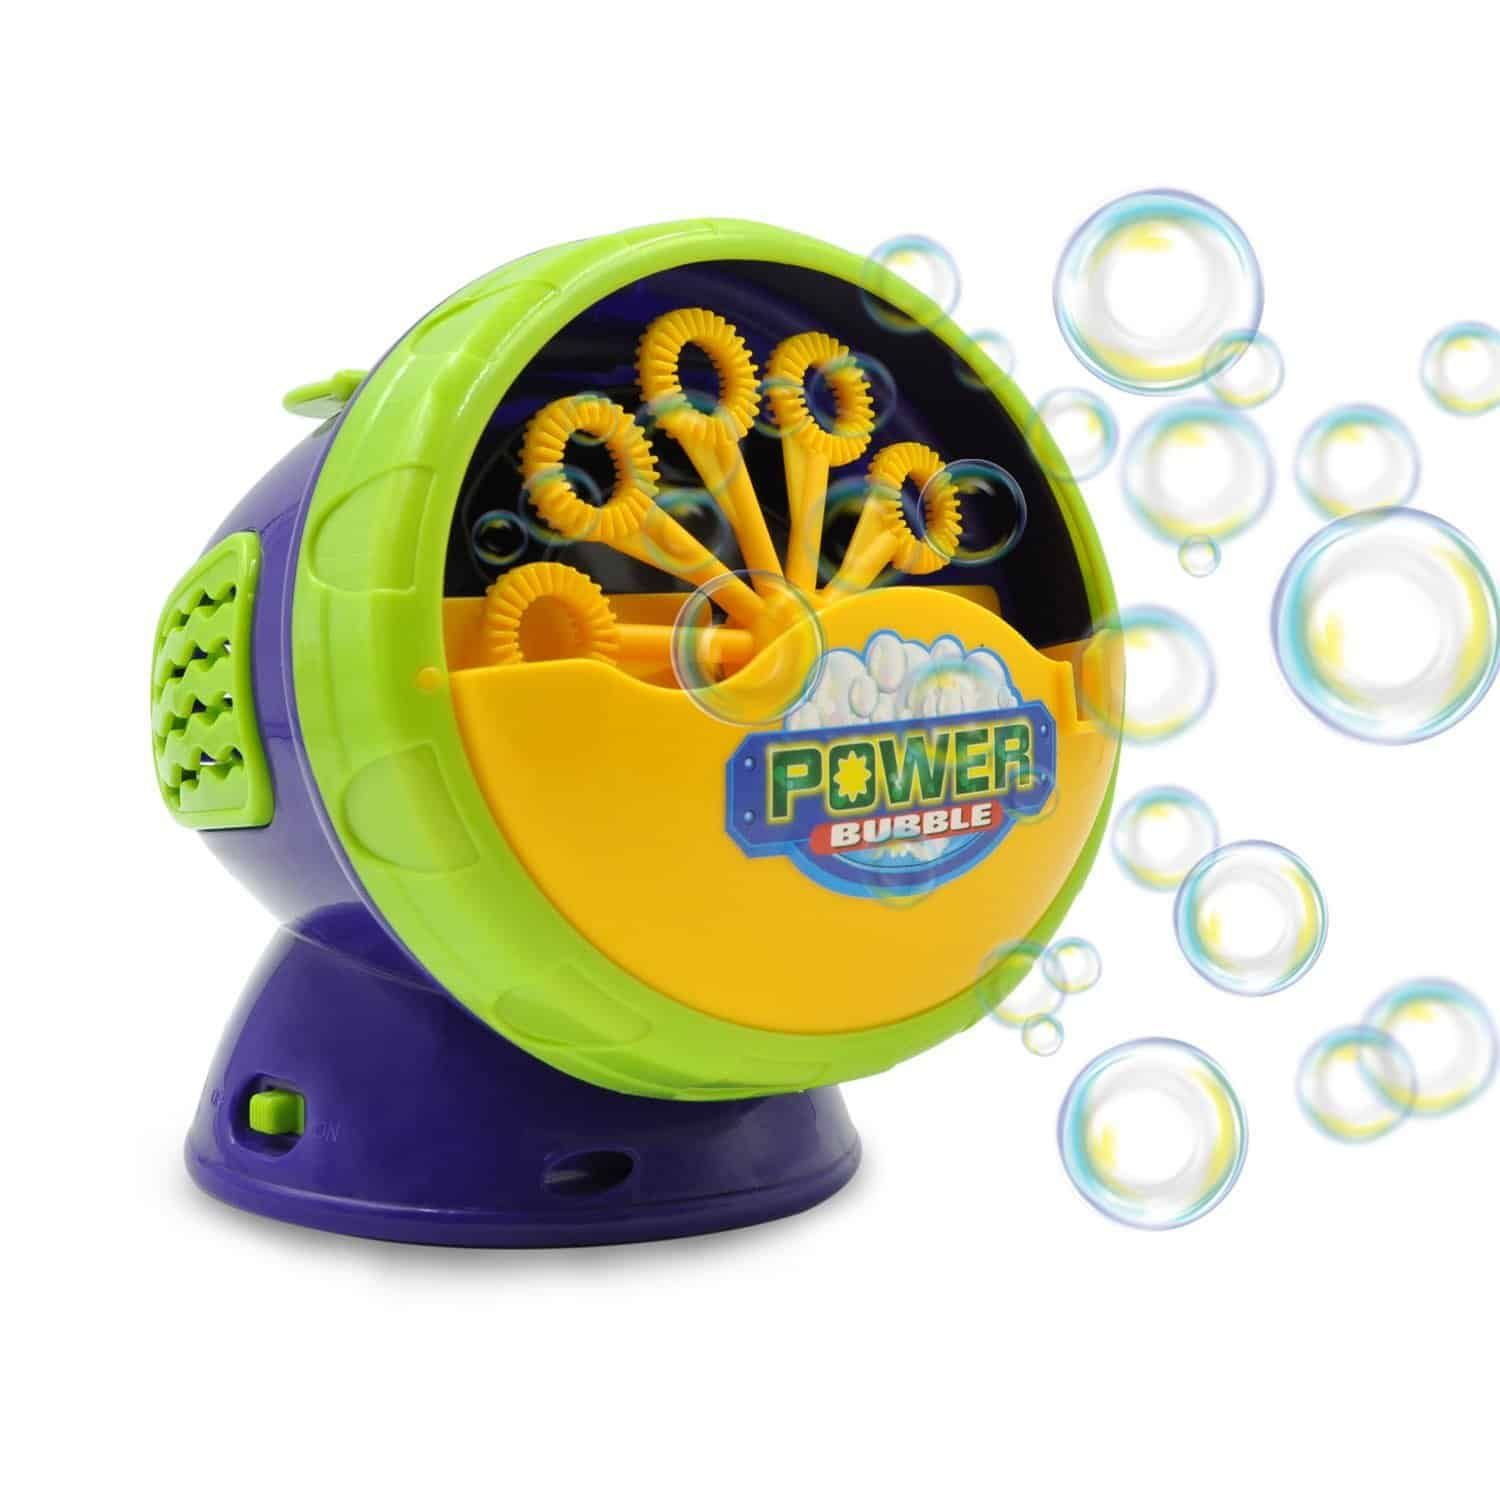 Top 10 Best Automatic Bubble Machines in 2020 Reviews ...